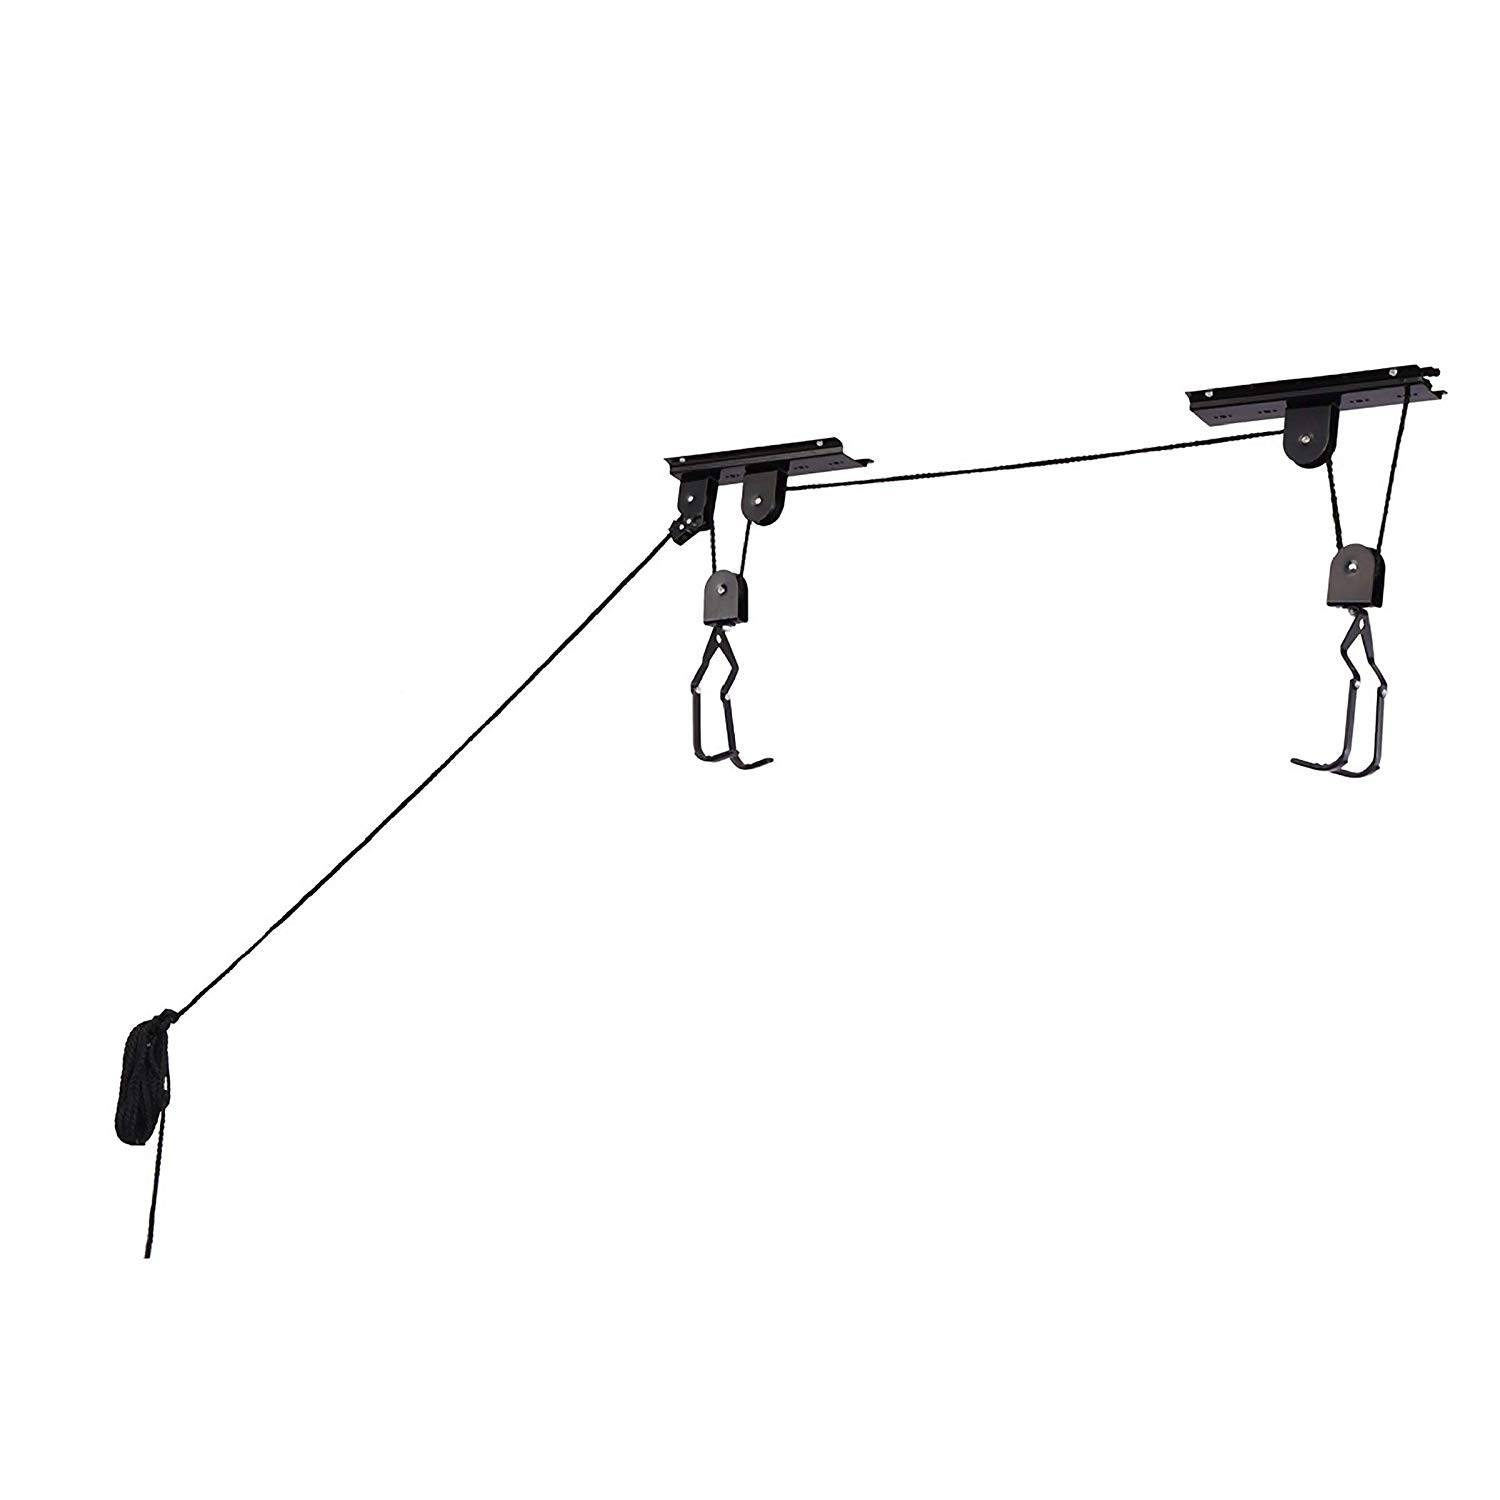 2005 RAD Cycle Products Heavy Duty Bike Lift Hoist